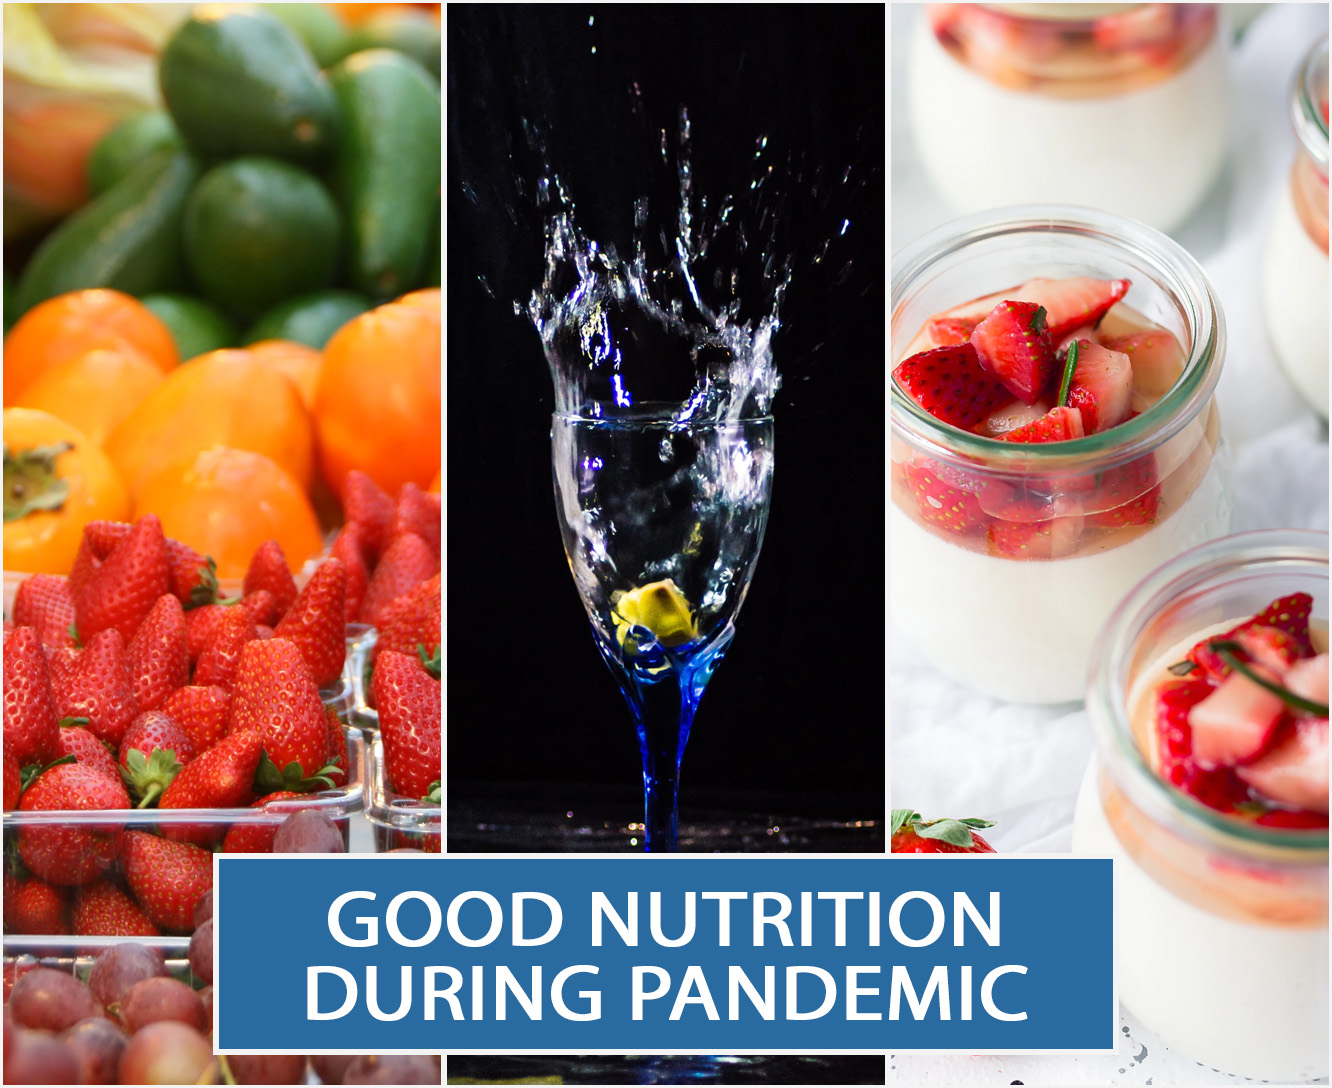 GOOD NUTRITION DURING PANDEMIC